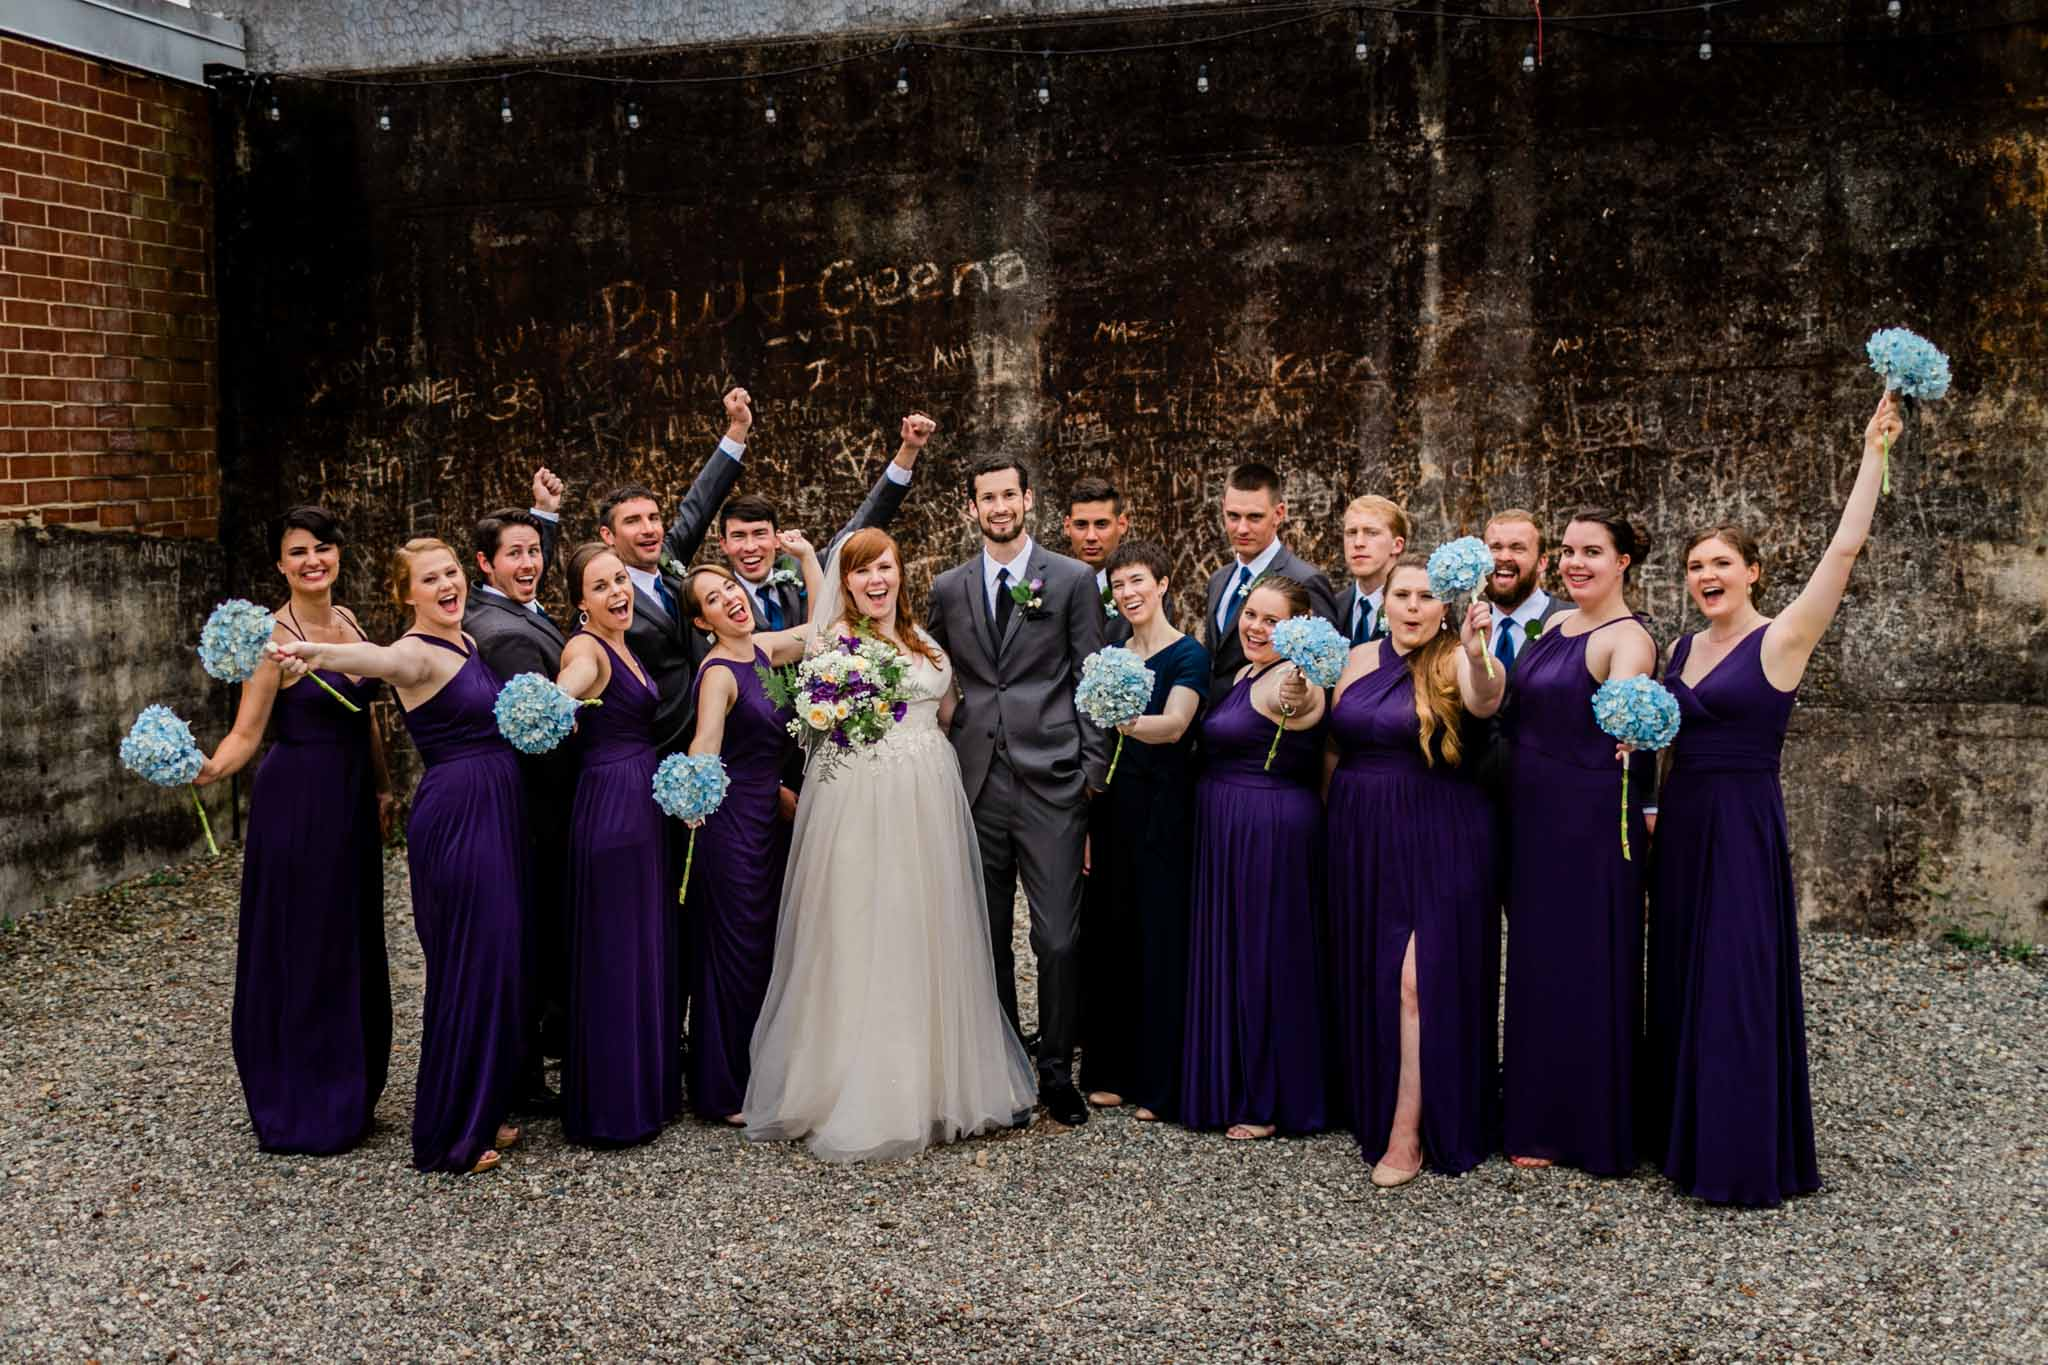 Haw River Ballroom Wedding | Durham Photographer | By G. Lin Photography | Wedding party outside of amphitheater cheering